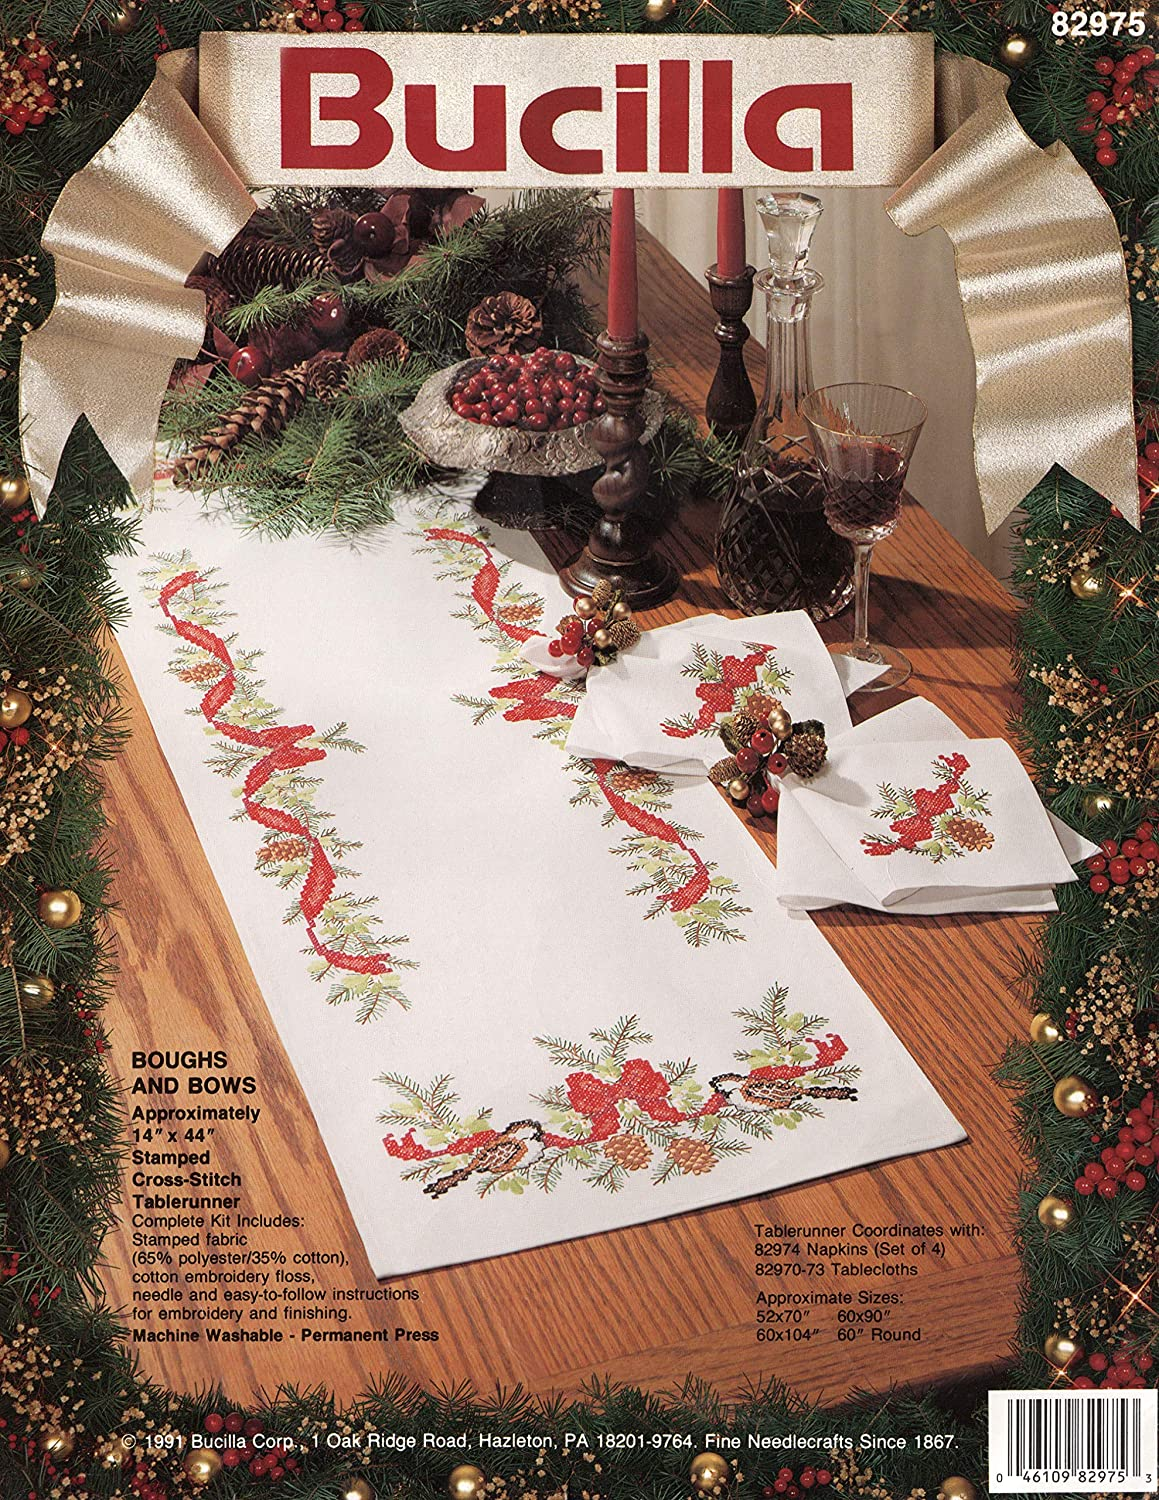 Bucilla Stamped Cross Stitch Tablerunner Kit 82975 Boughs and Bows